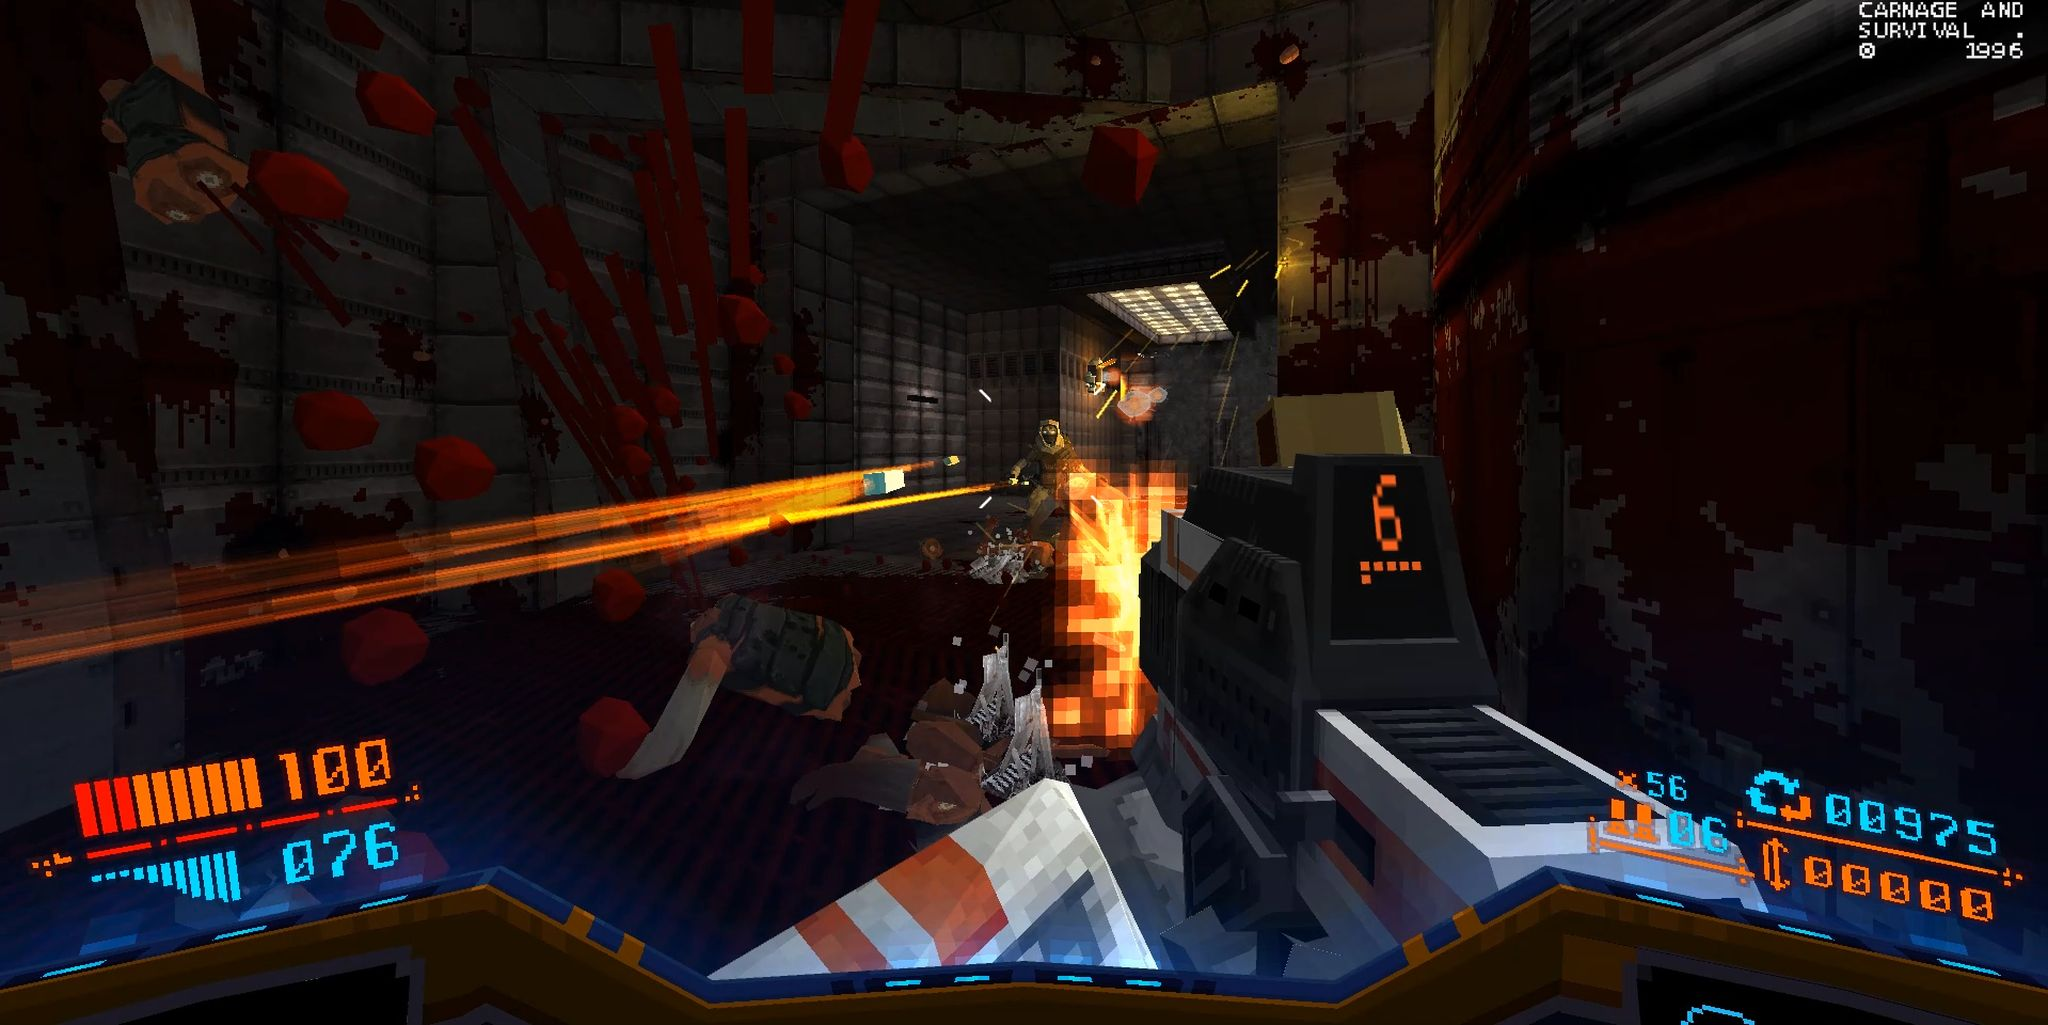 Promotional image of a gun battle for the first person shooter Strafe.